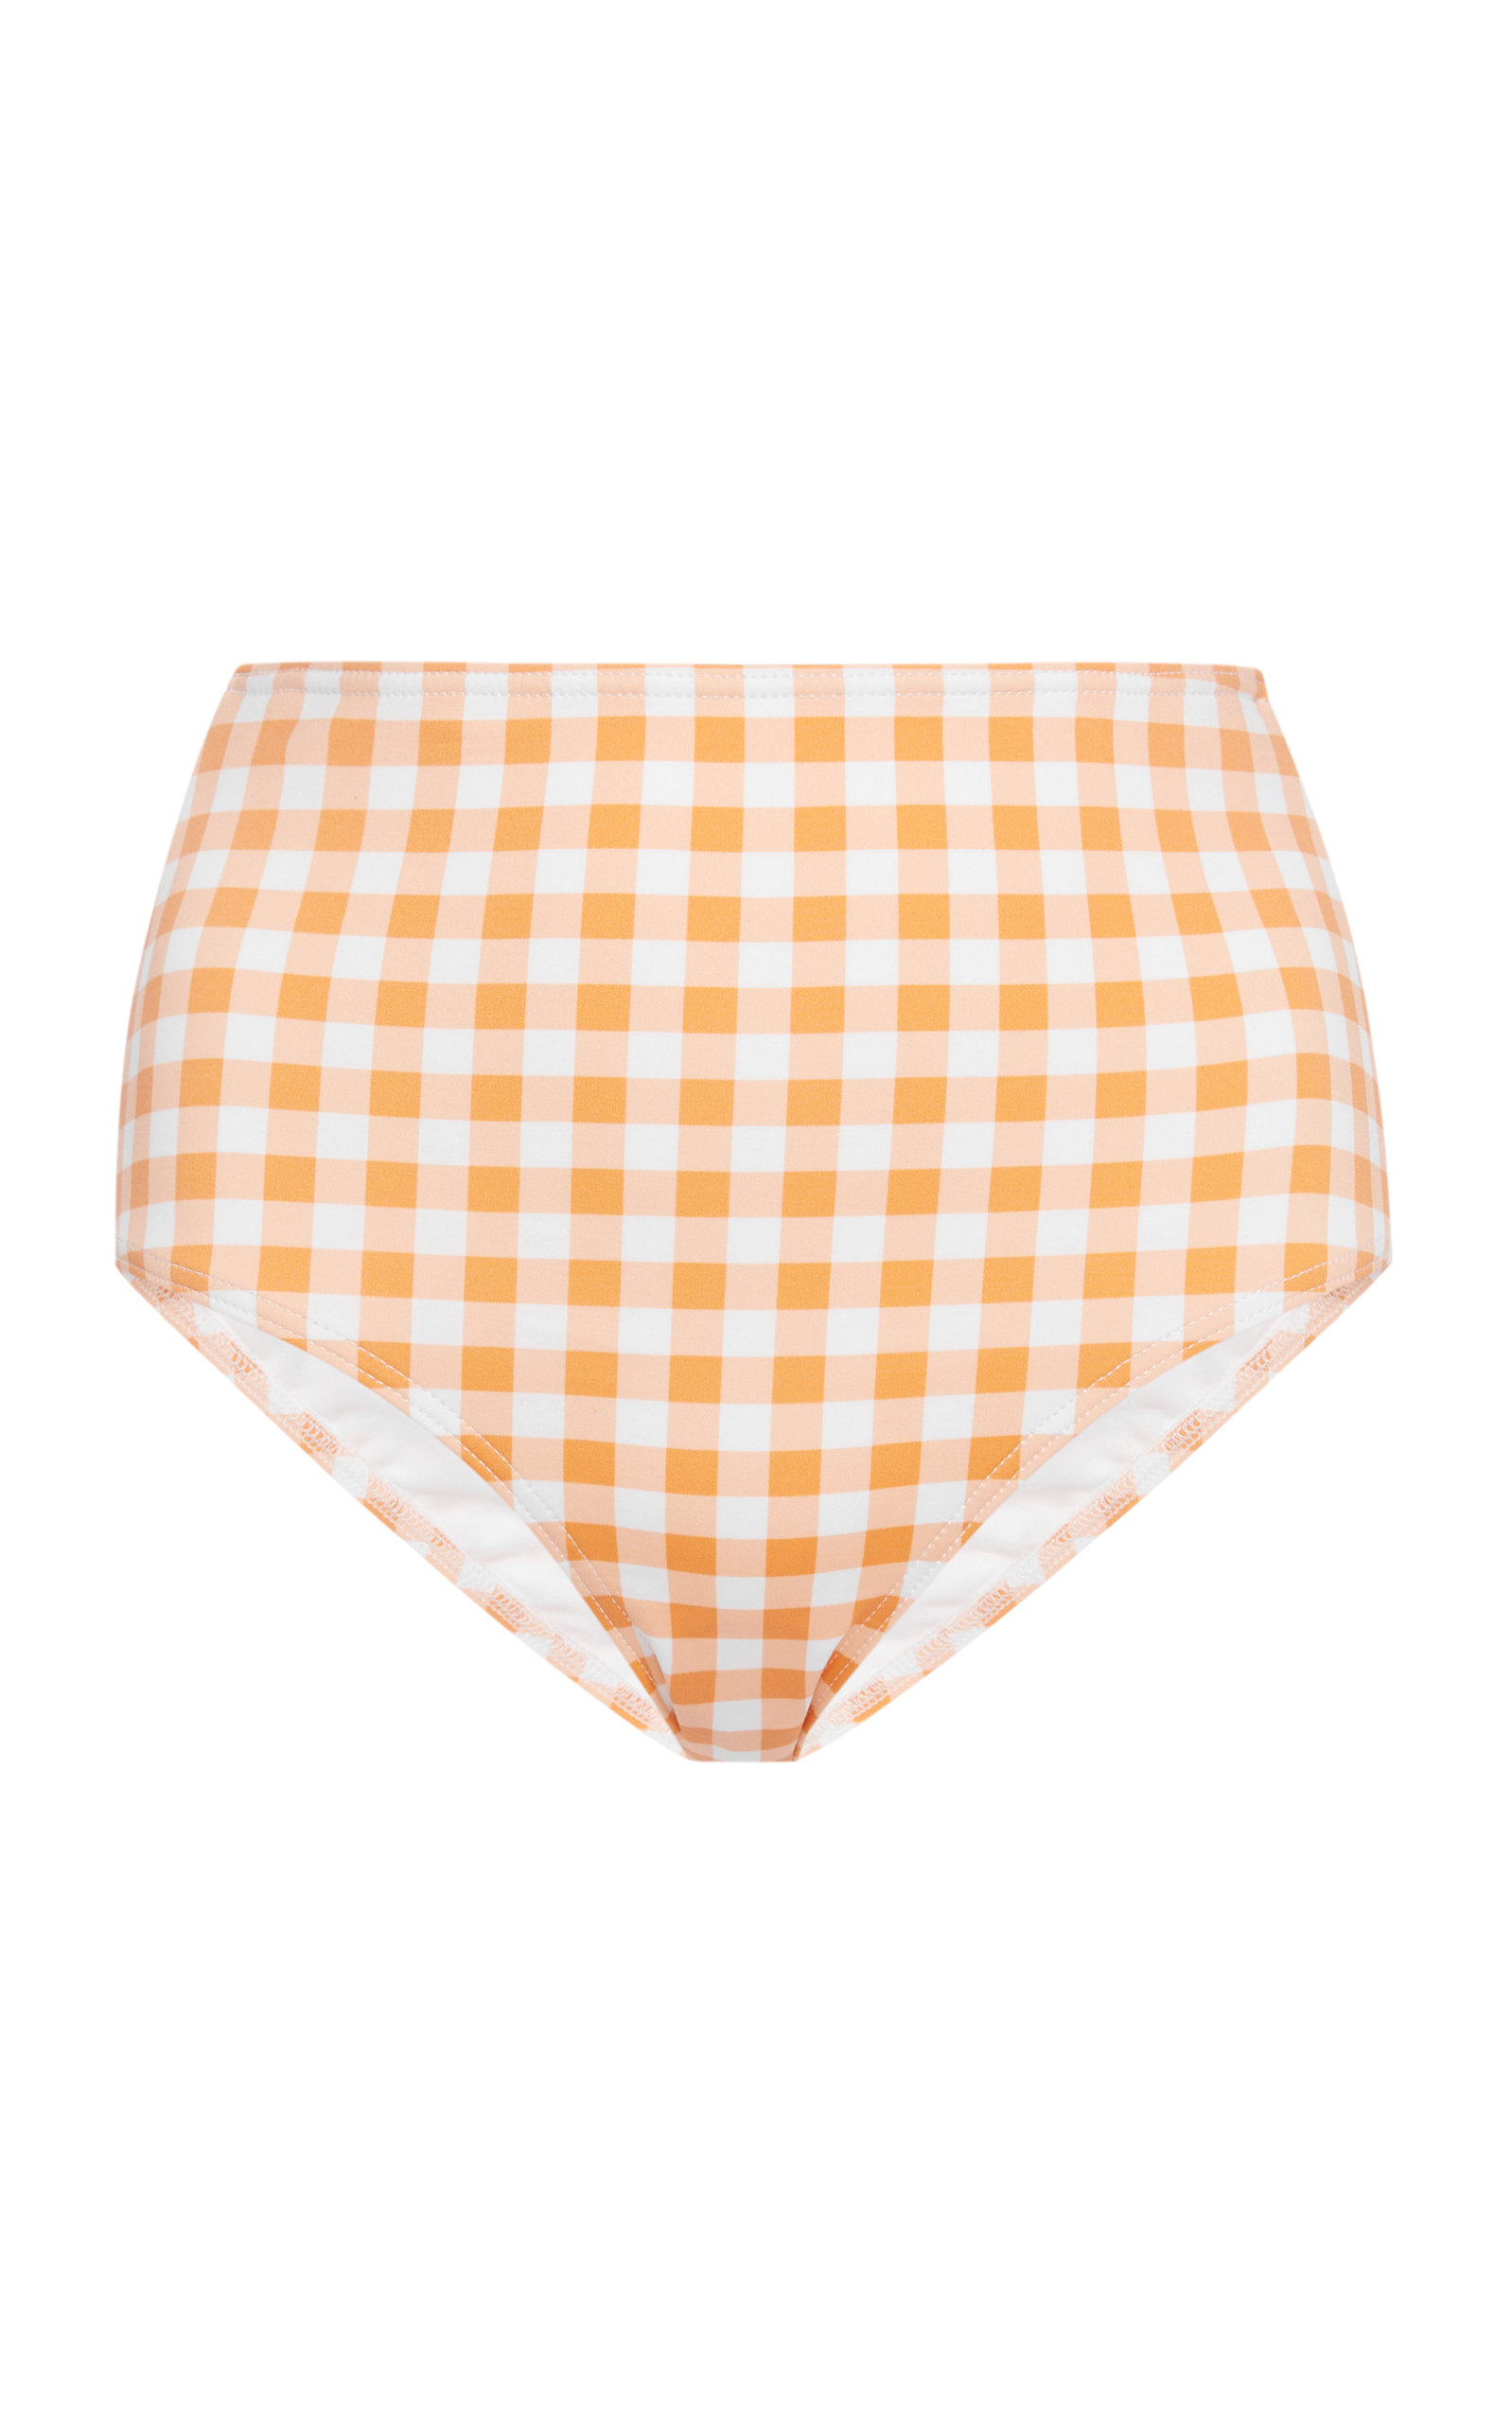 EPHEMERA HIGH-WAISTED GINGHAM BIKINI BRIEFS